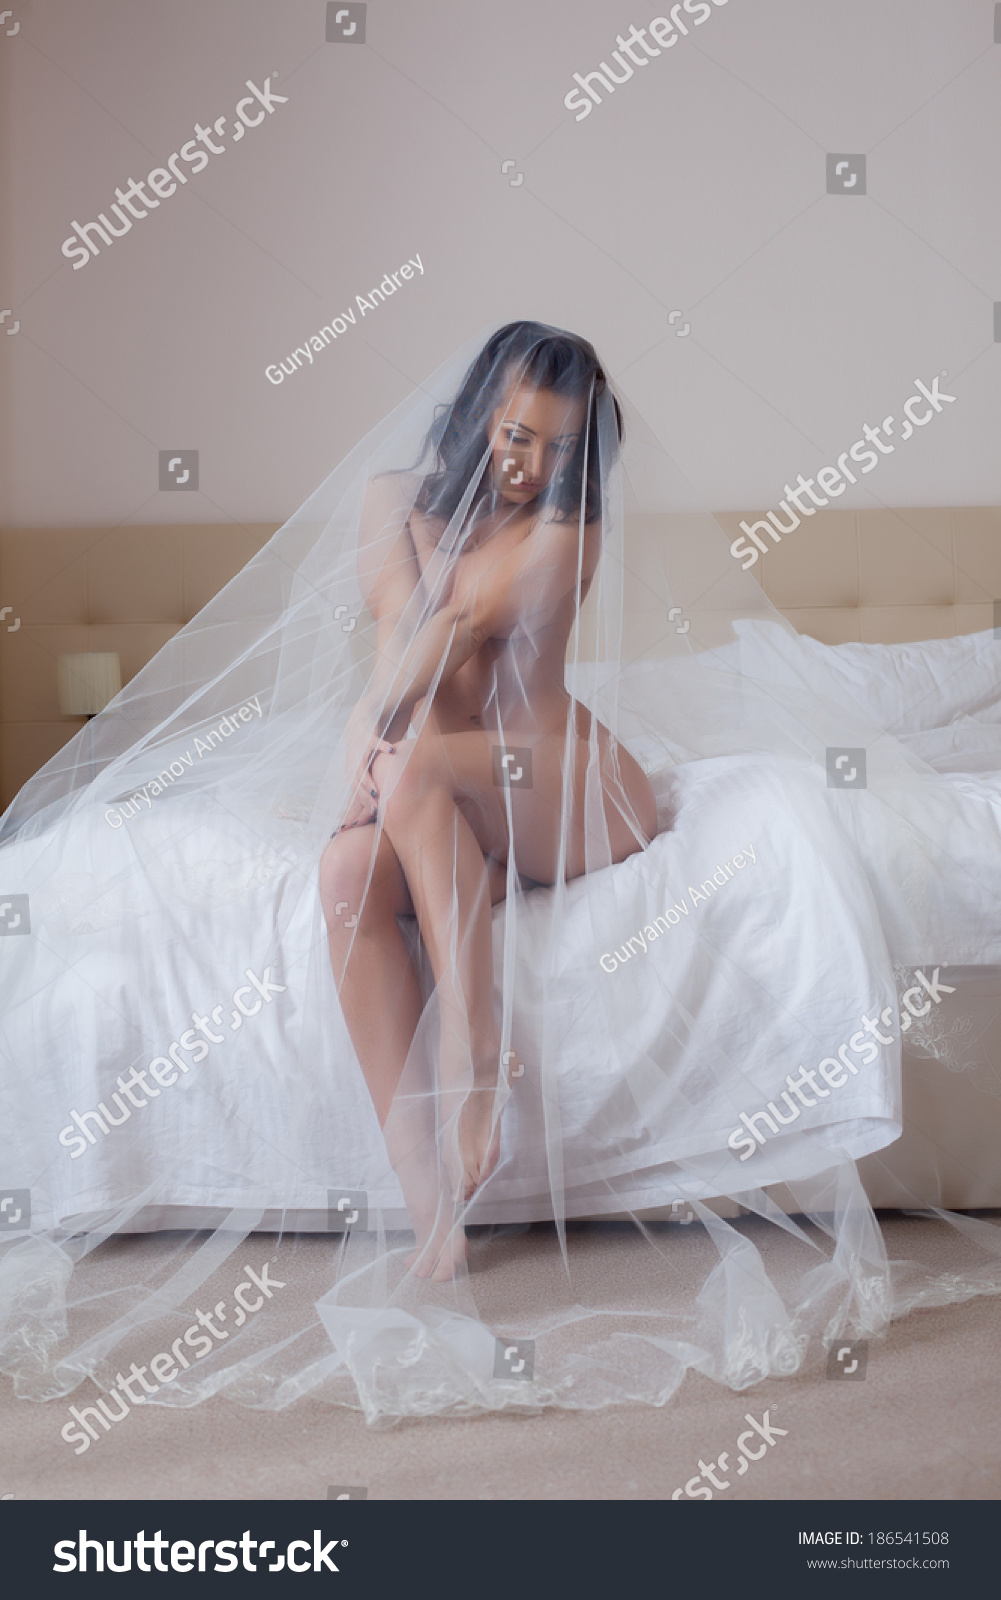 girl in veil naked